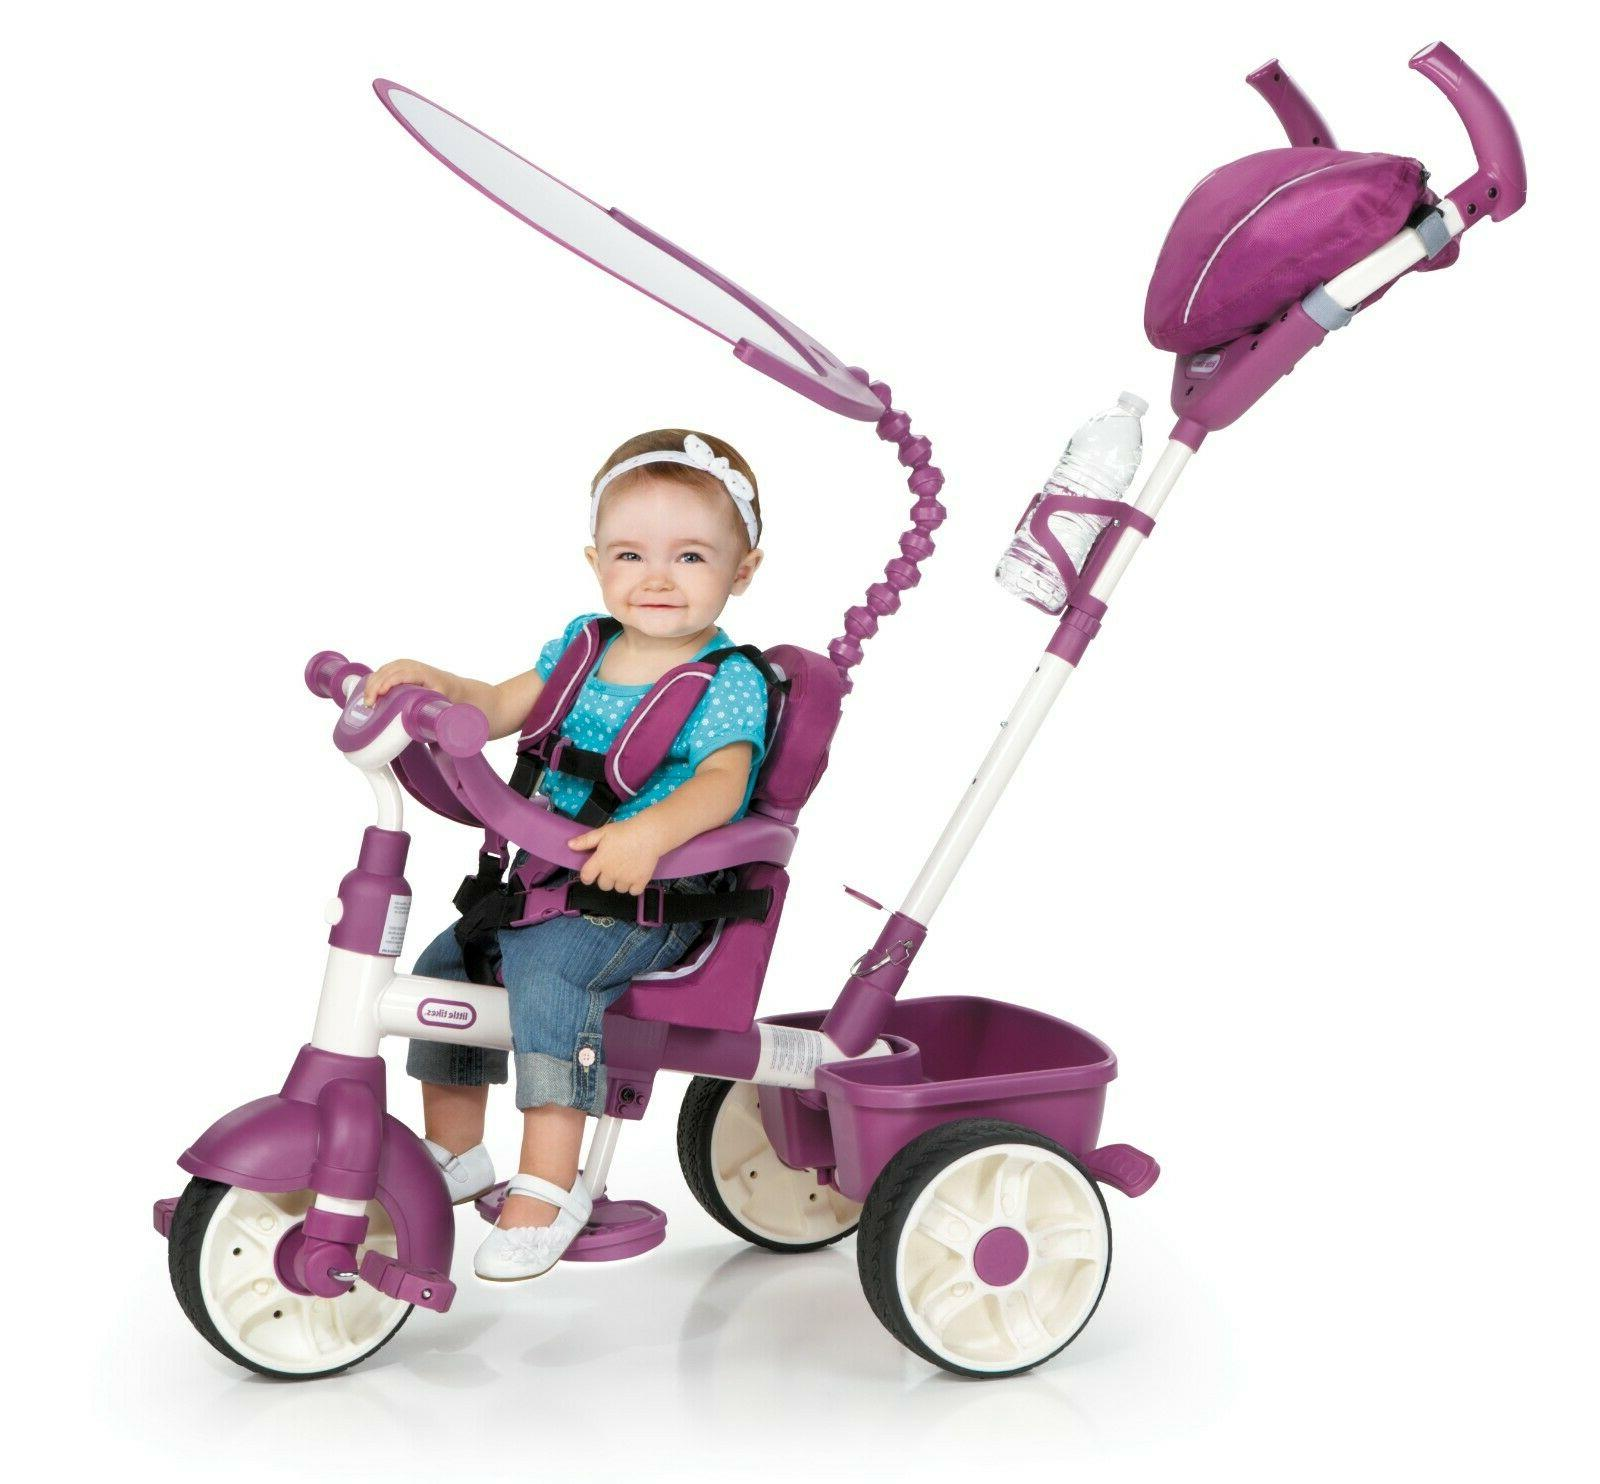 4 in 1 sports edition trike pink